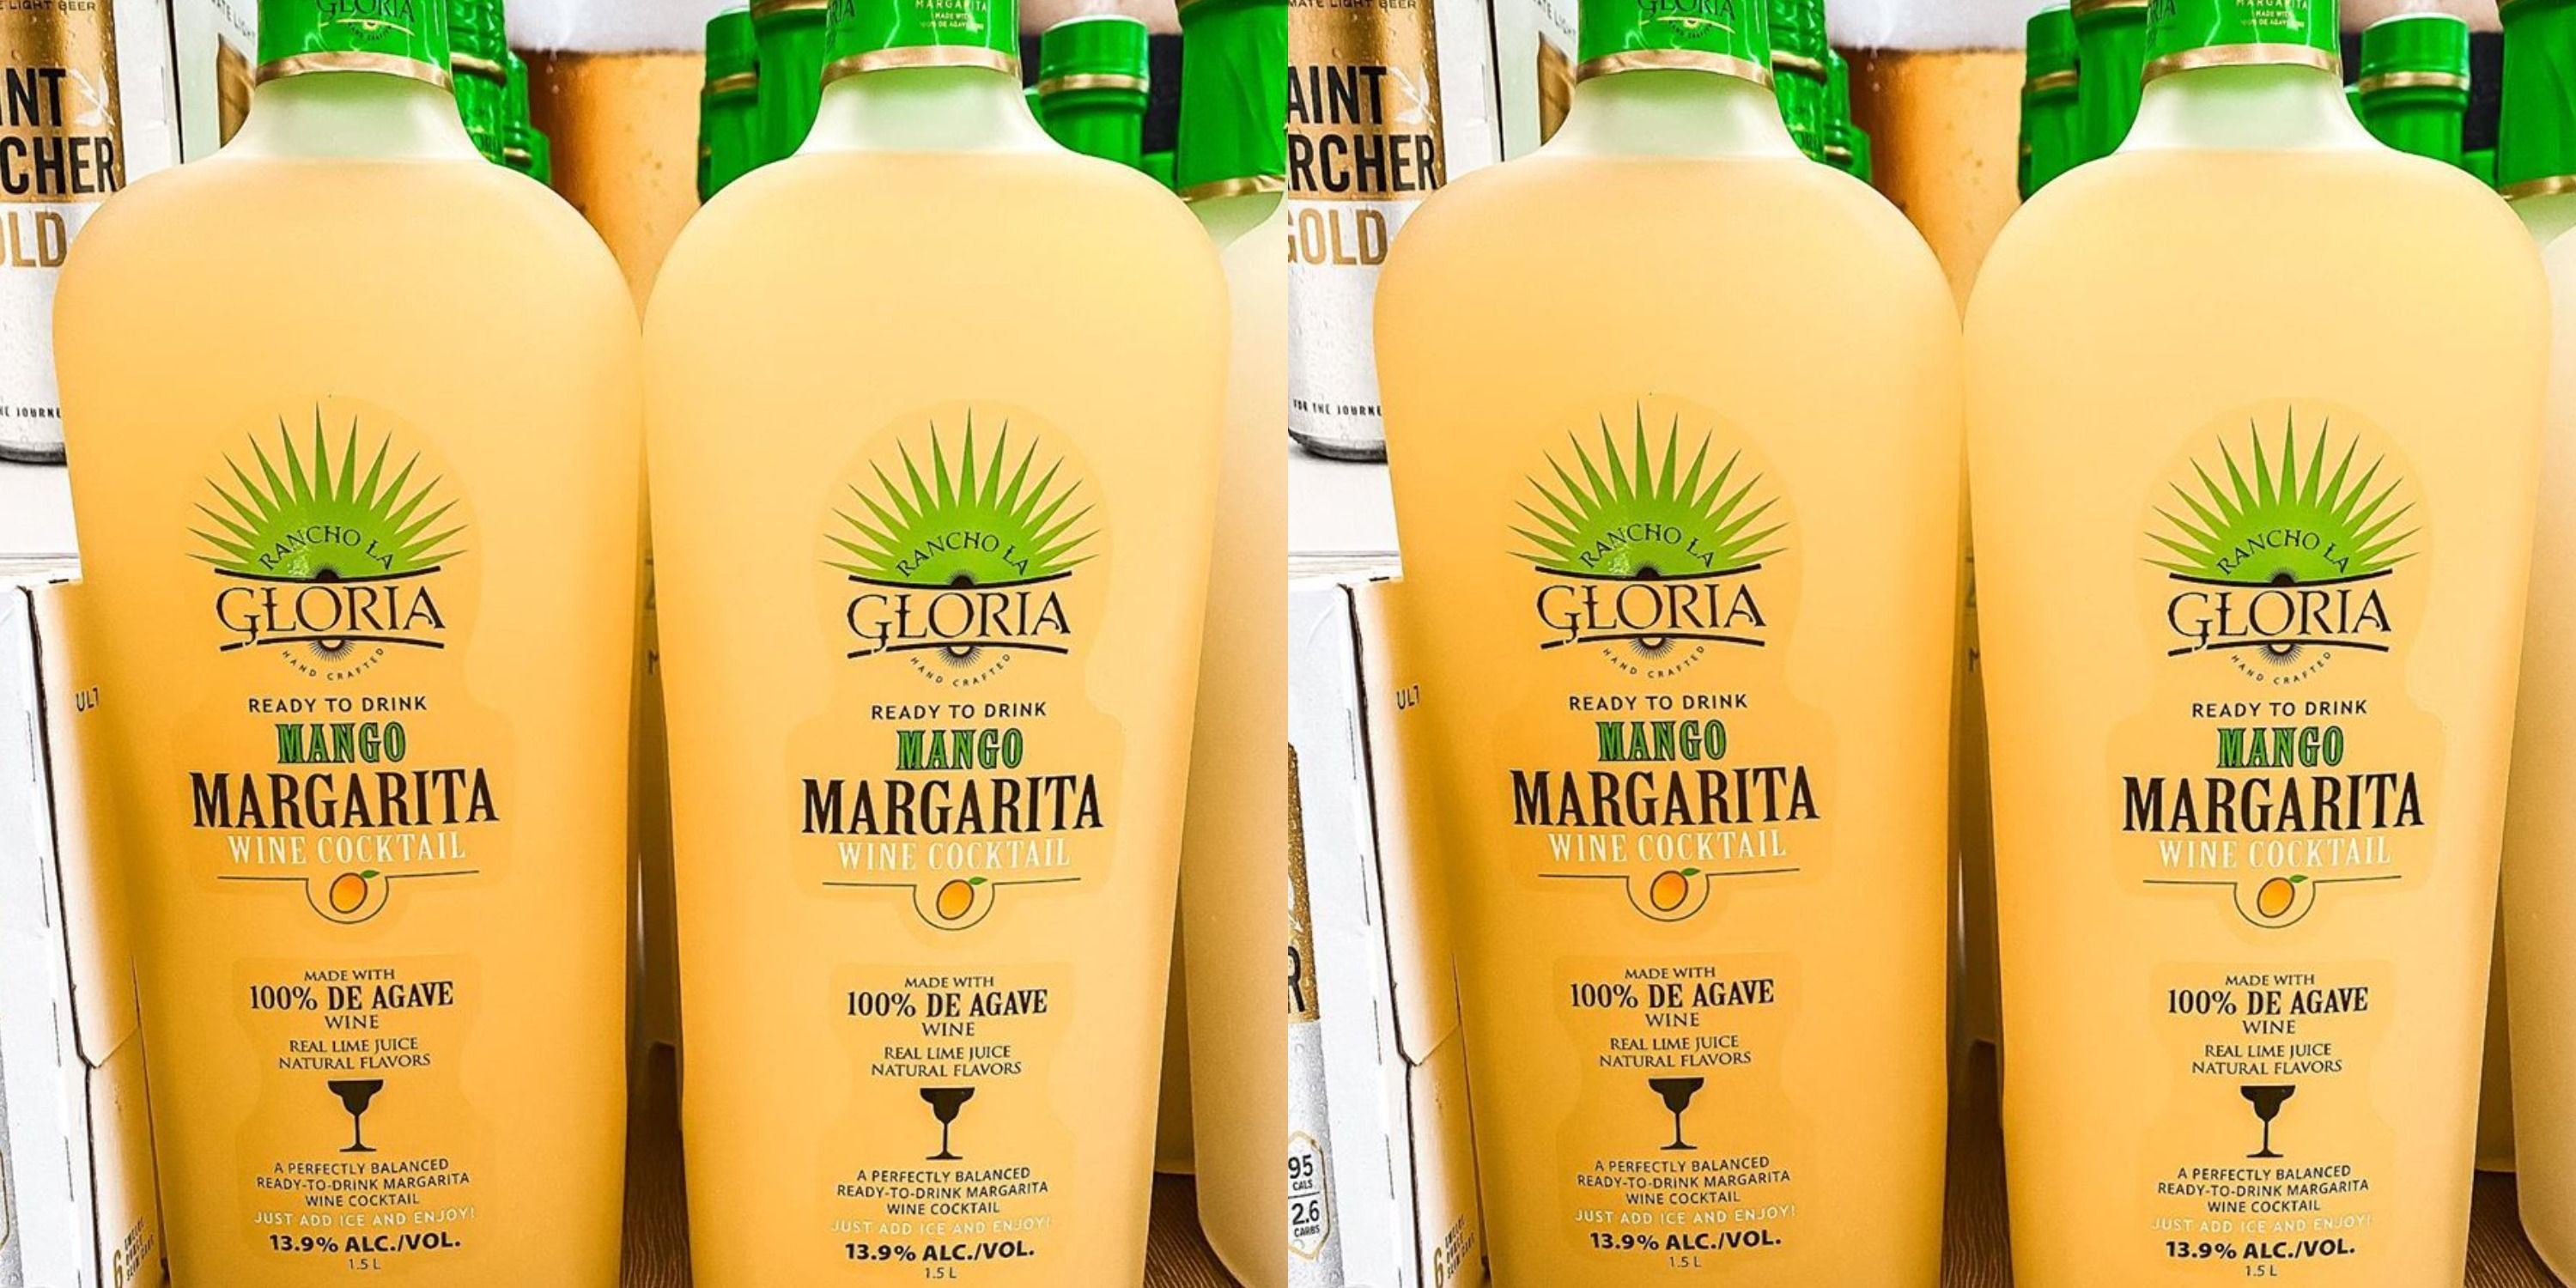 Aldi Is Selling Bottles Of Margarita Wine In A Mango Flavor